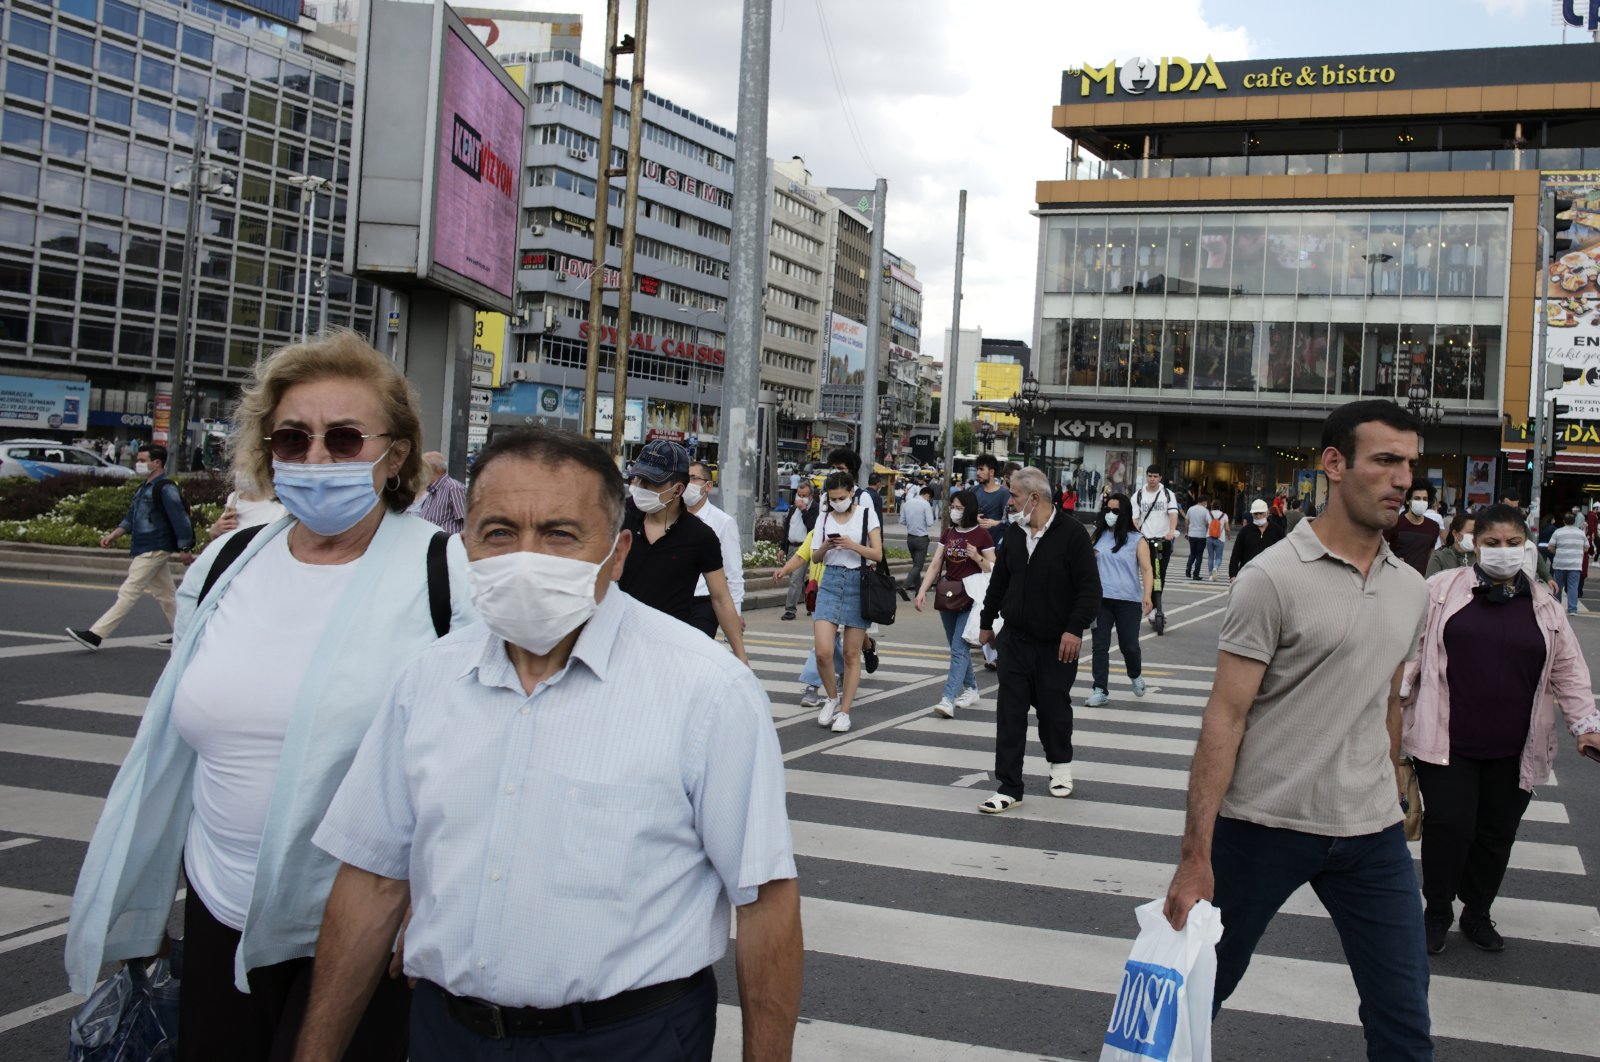 People wearing face masks to protect against the spread of coronavirus, walk in the main Kızılay Square, in Ankara, Turkey, Tuesday, June 16, 2020. (AP Photo)